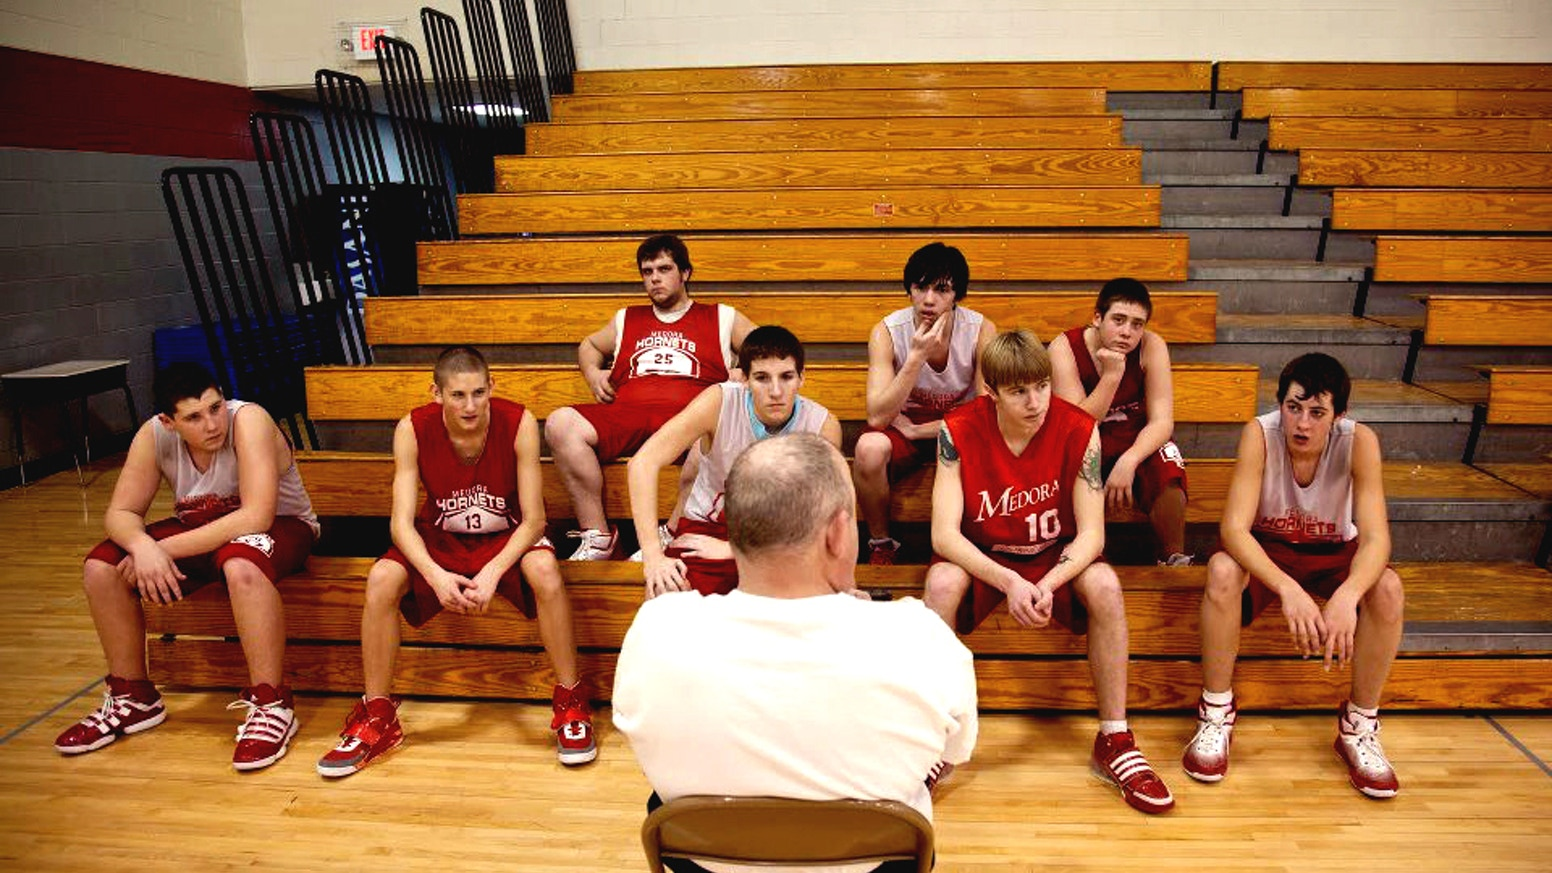 """""""Medora"""" examines the struggles of small-town America, following a resilient high school basketball team in rural Medora, Indiana."""